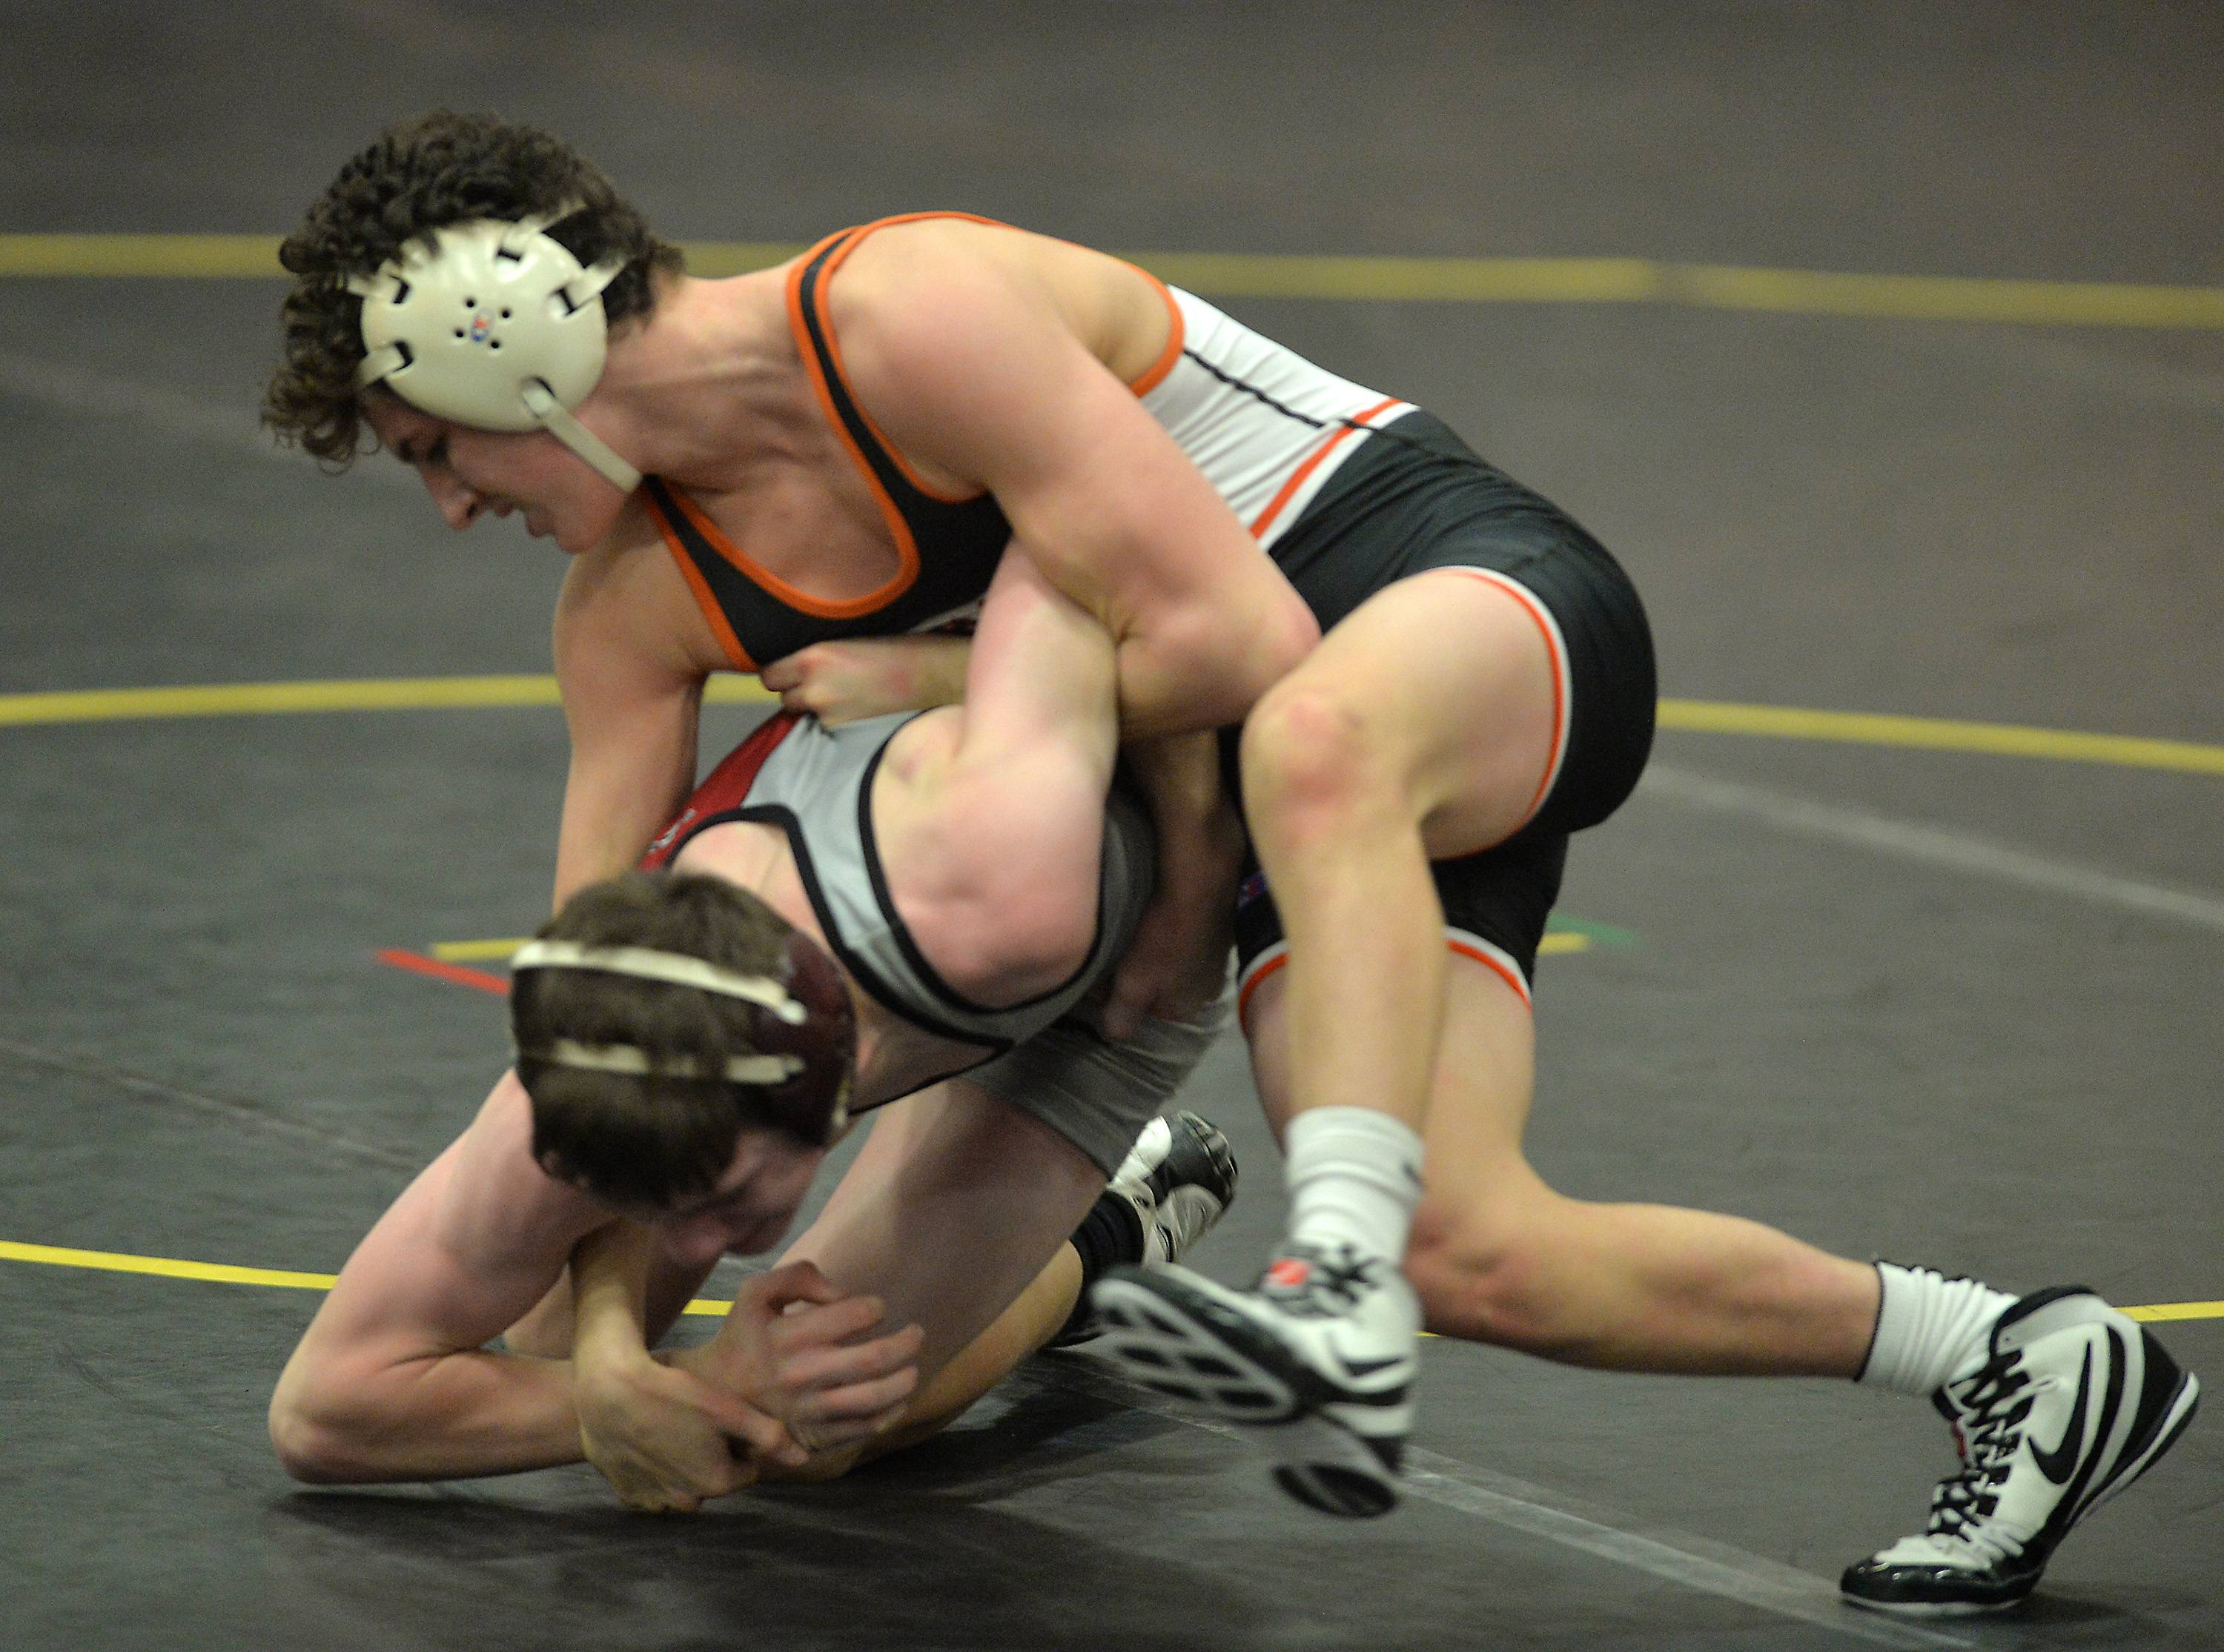 St. Charles East's Justin Benjamin gains control of Antioch's Wally Marsh in their 126-pound match Saturday in a quad meet at Sycamore High School. Benjamin won the contest by fall.